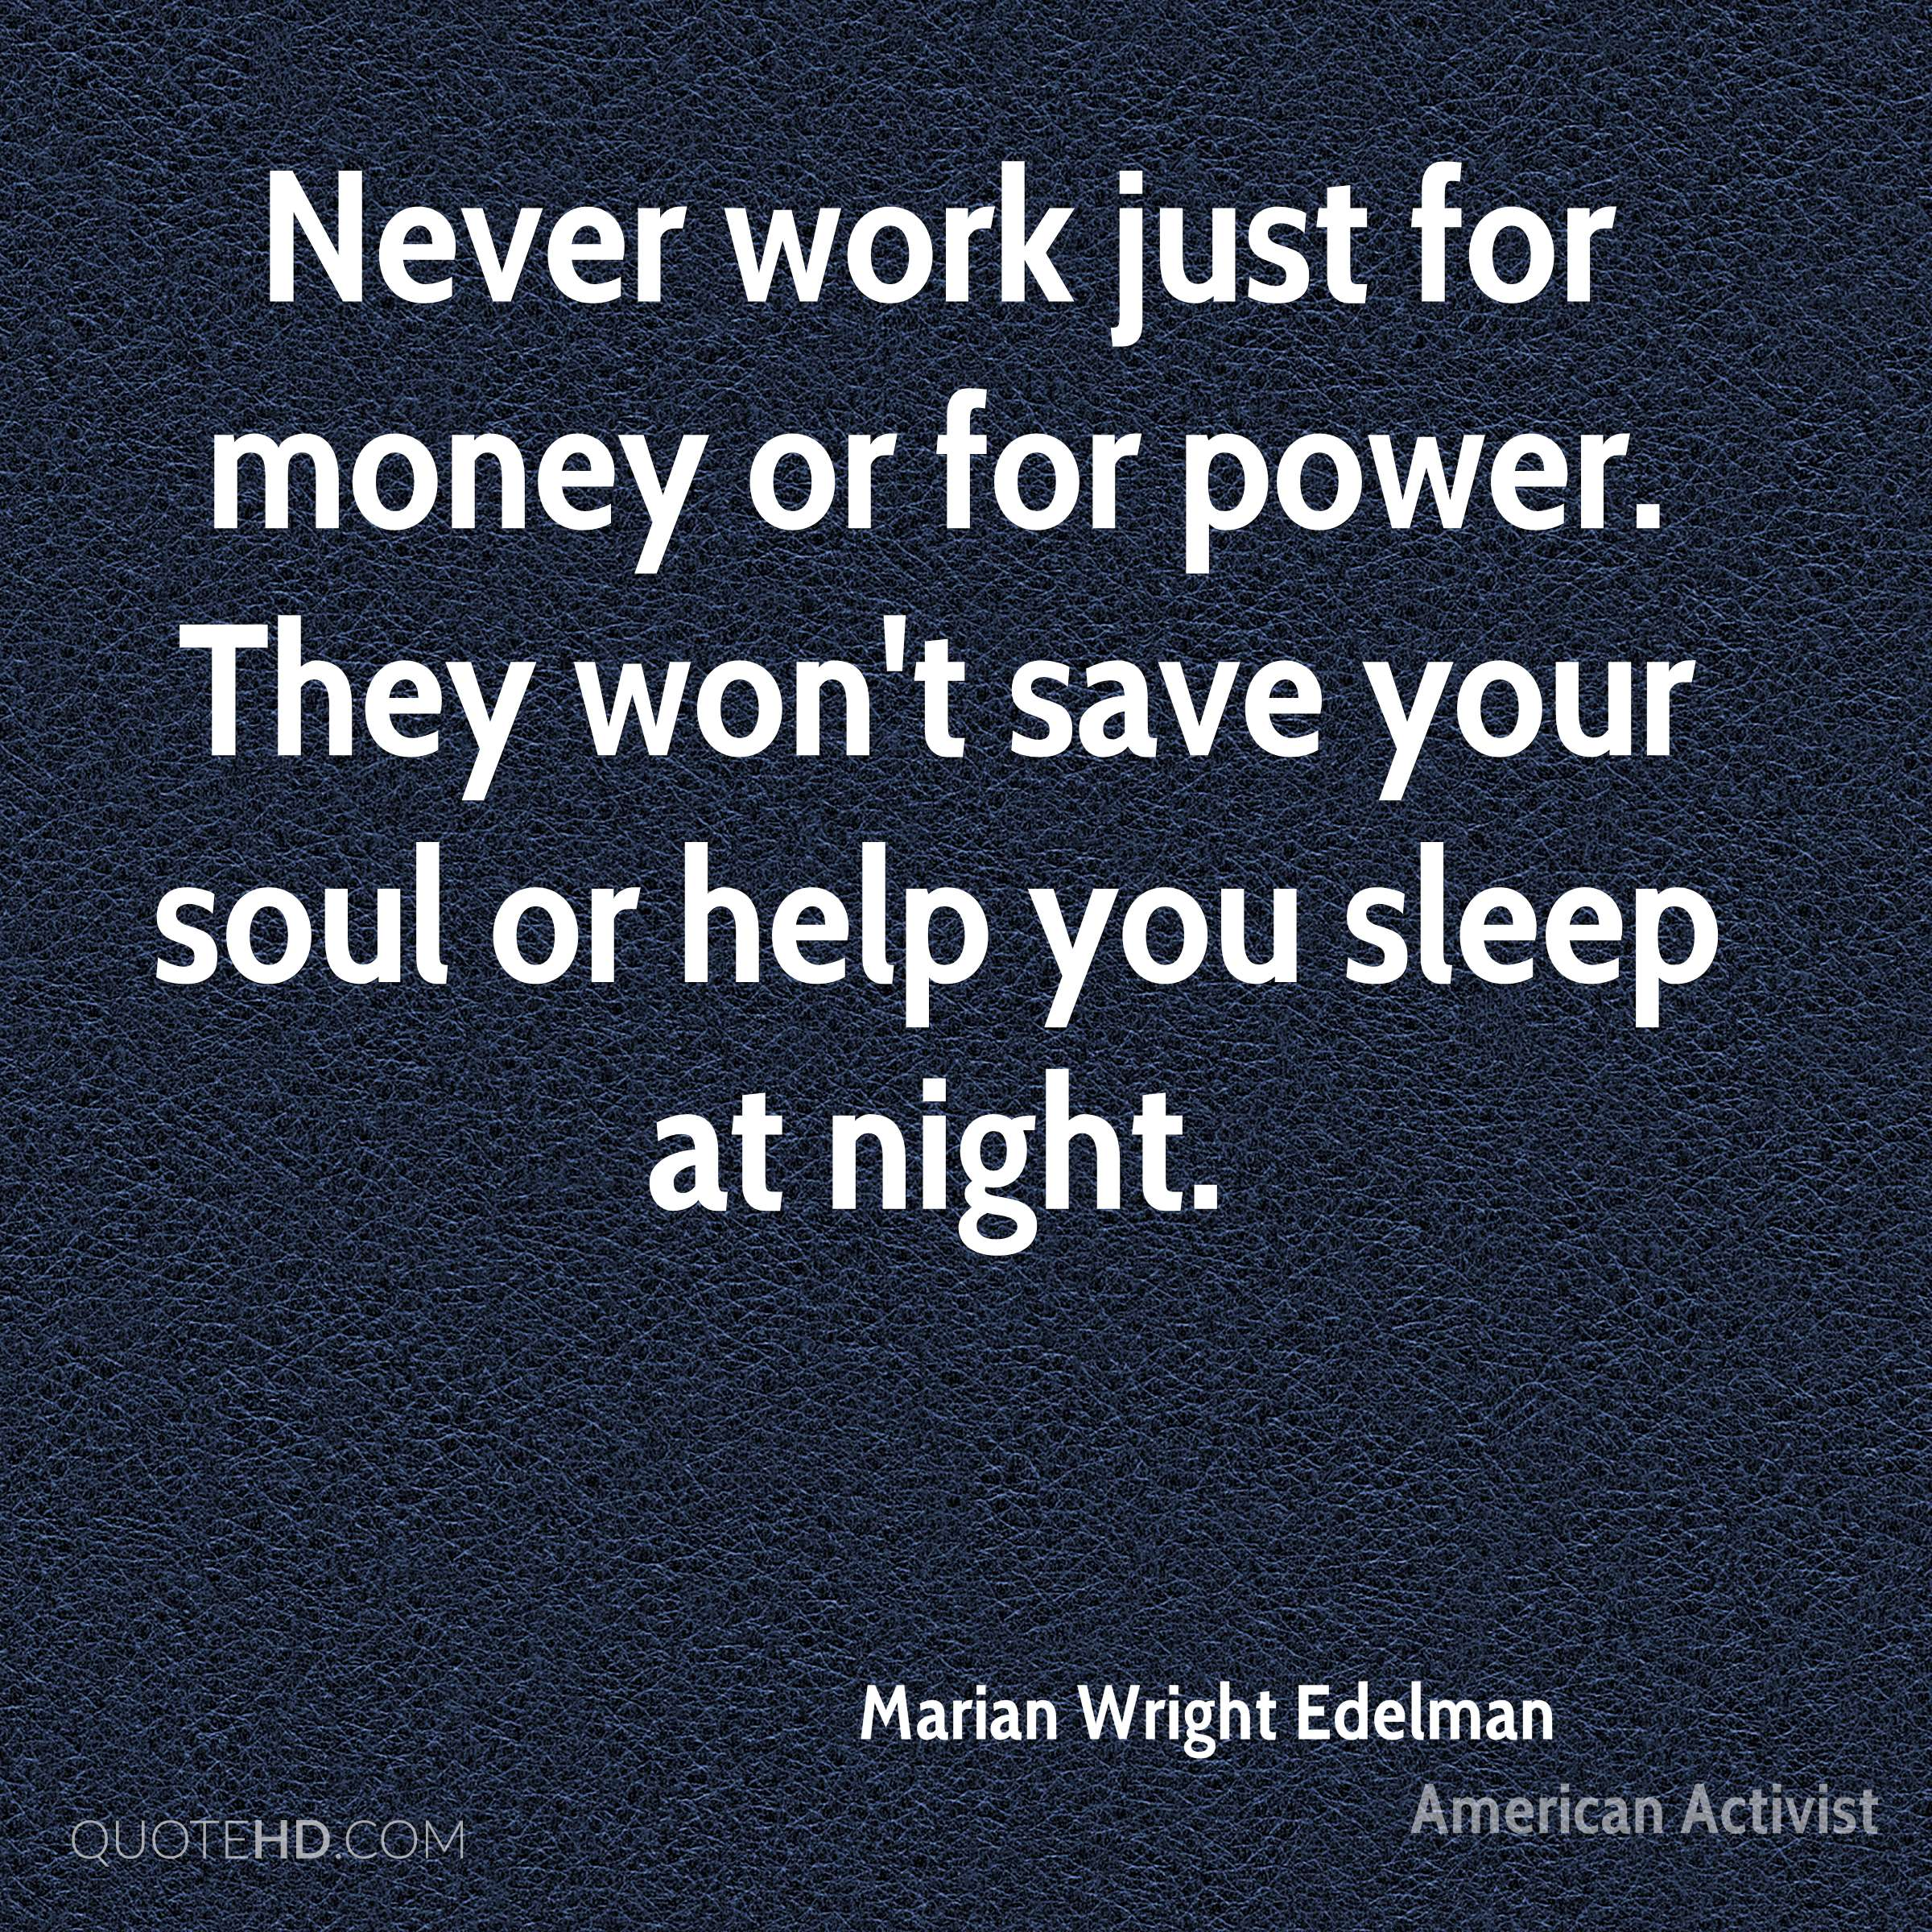 Quotes About Love: Never Sleep And Work Quotes. QuotesGram